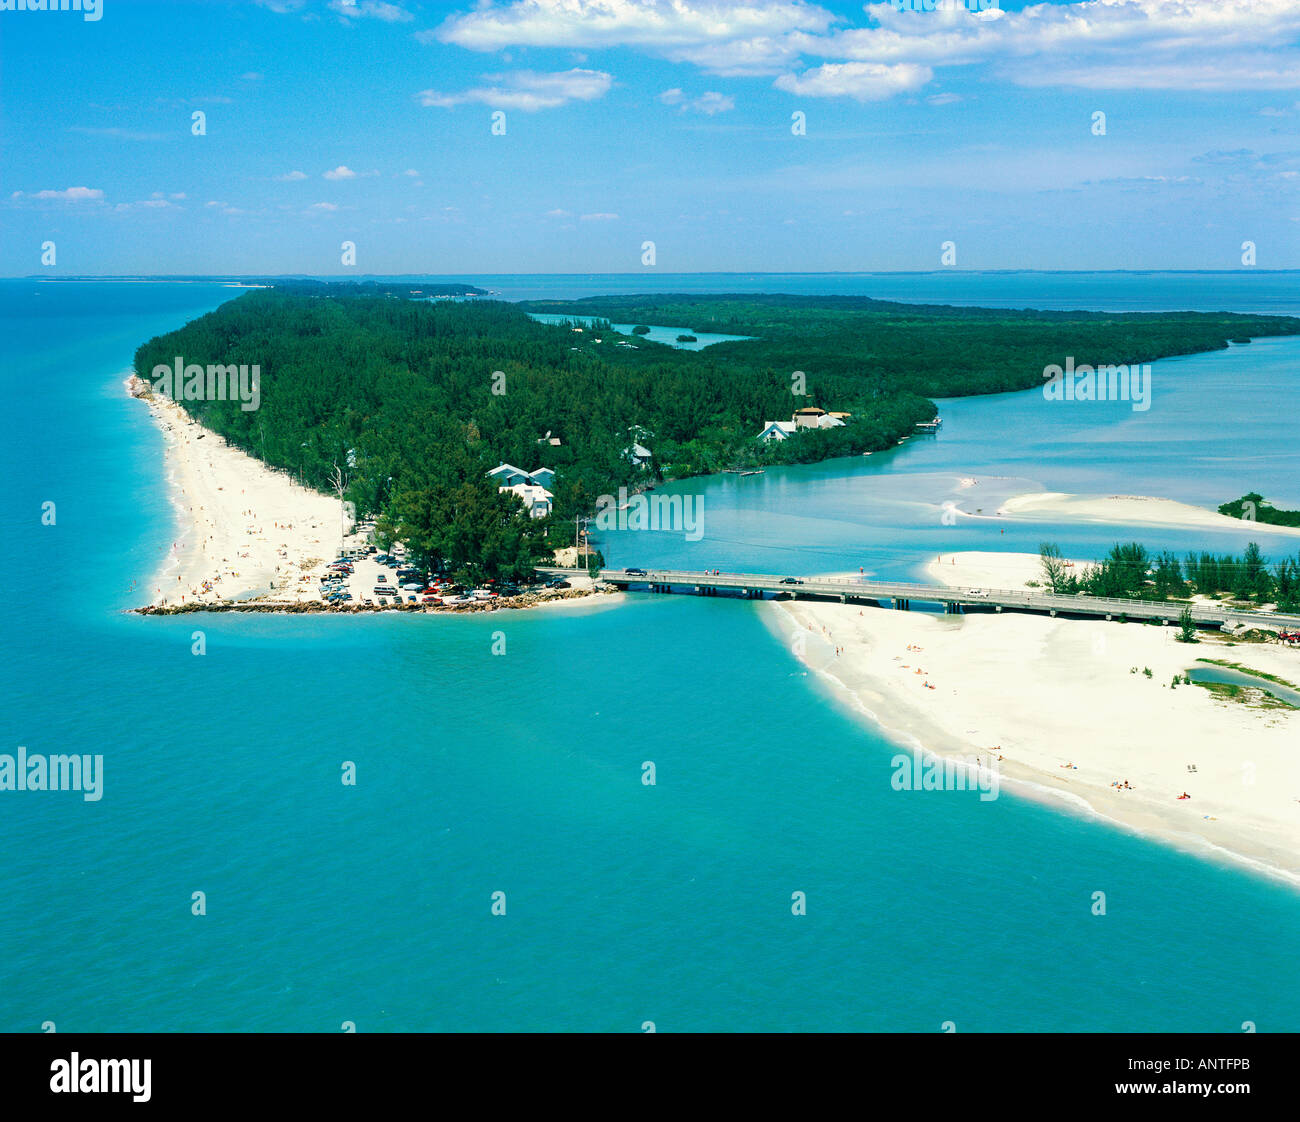 Captiva Island: USA FLORIDA SANIBEL CAPTIVA ISLAND BLIND PASS Stock Photo